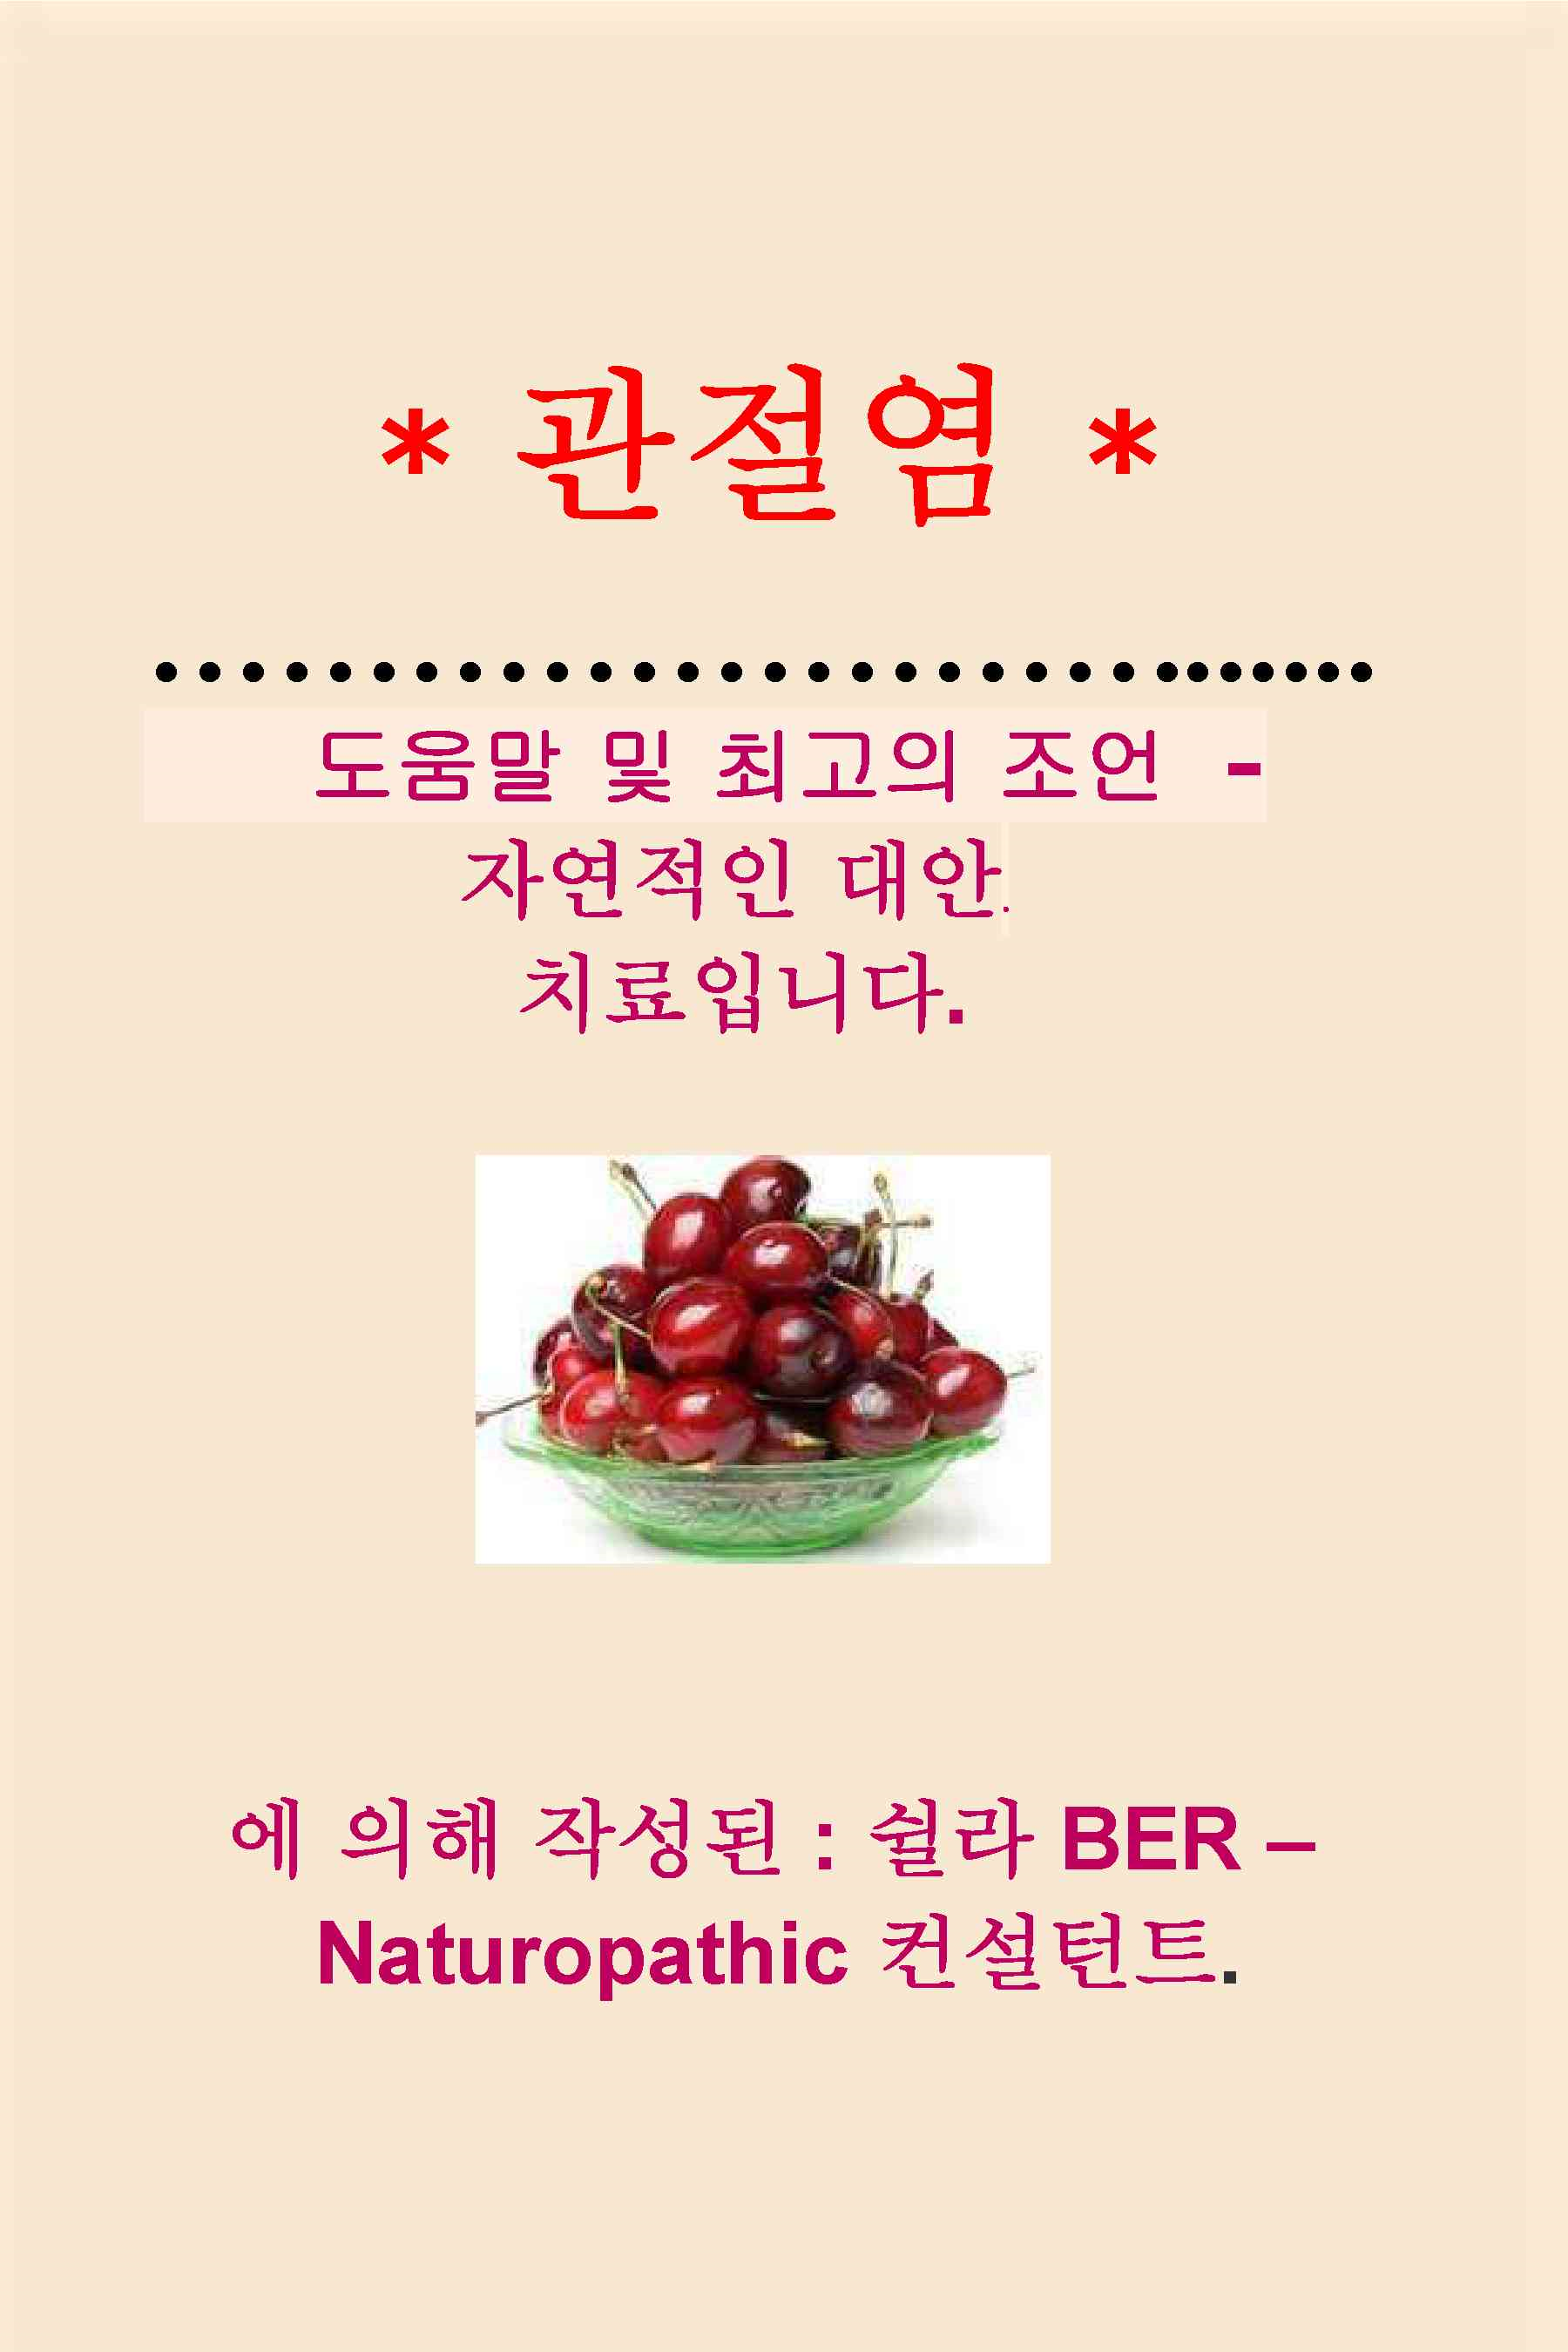 * ARTHRITIS *  HELP and BEST ADVICE - NATURAL ALTERNATIVE TREATMENT. KOREAN Edition. Written by SHEILA BER.